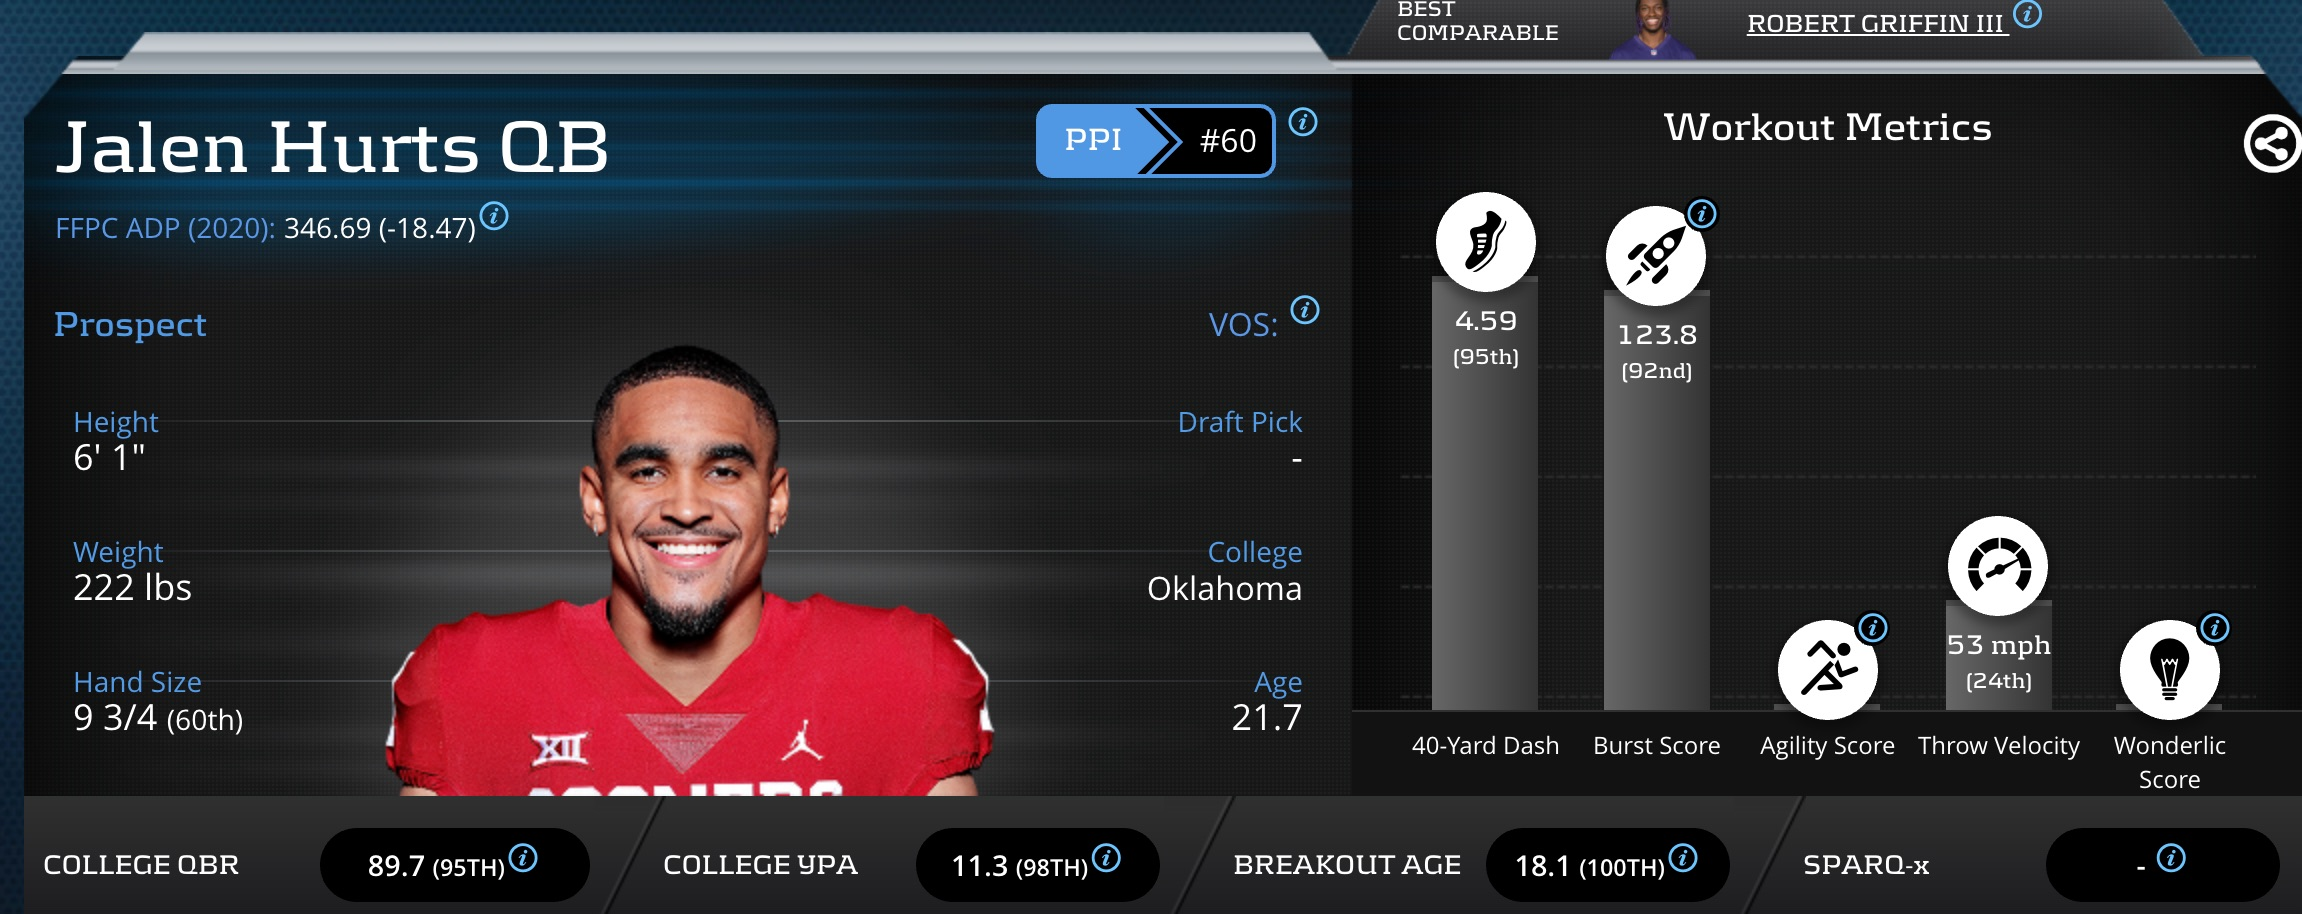 Jalen Hurts Is The Next Mobile QB Prepped To Dominate The NFL